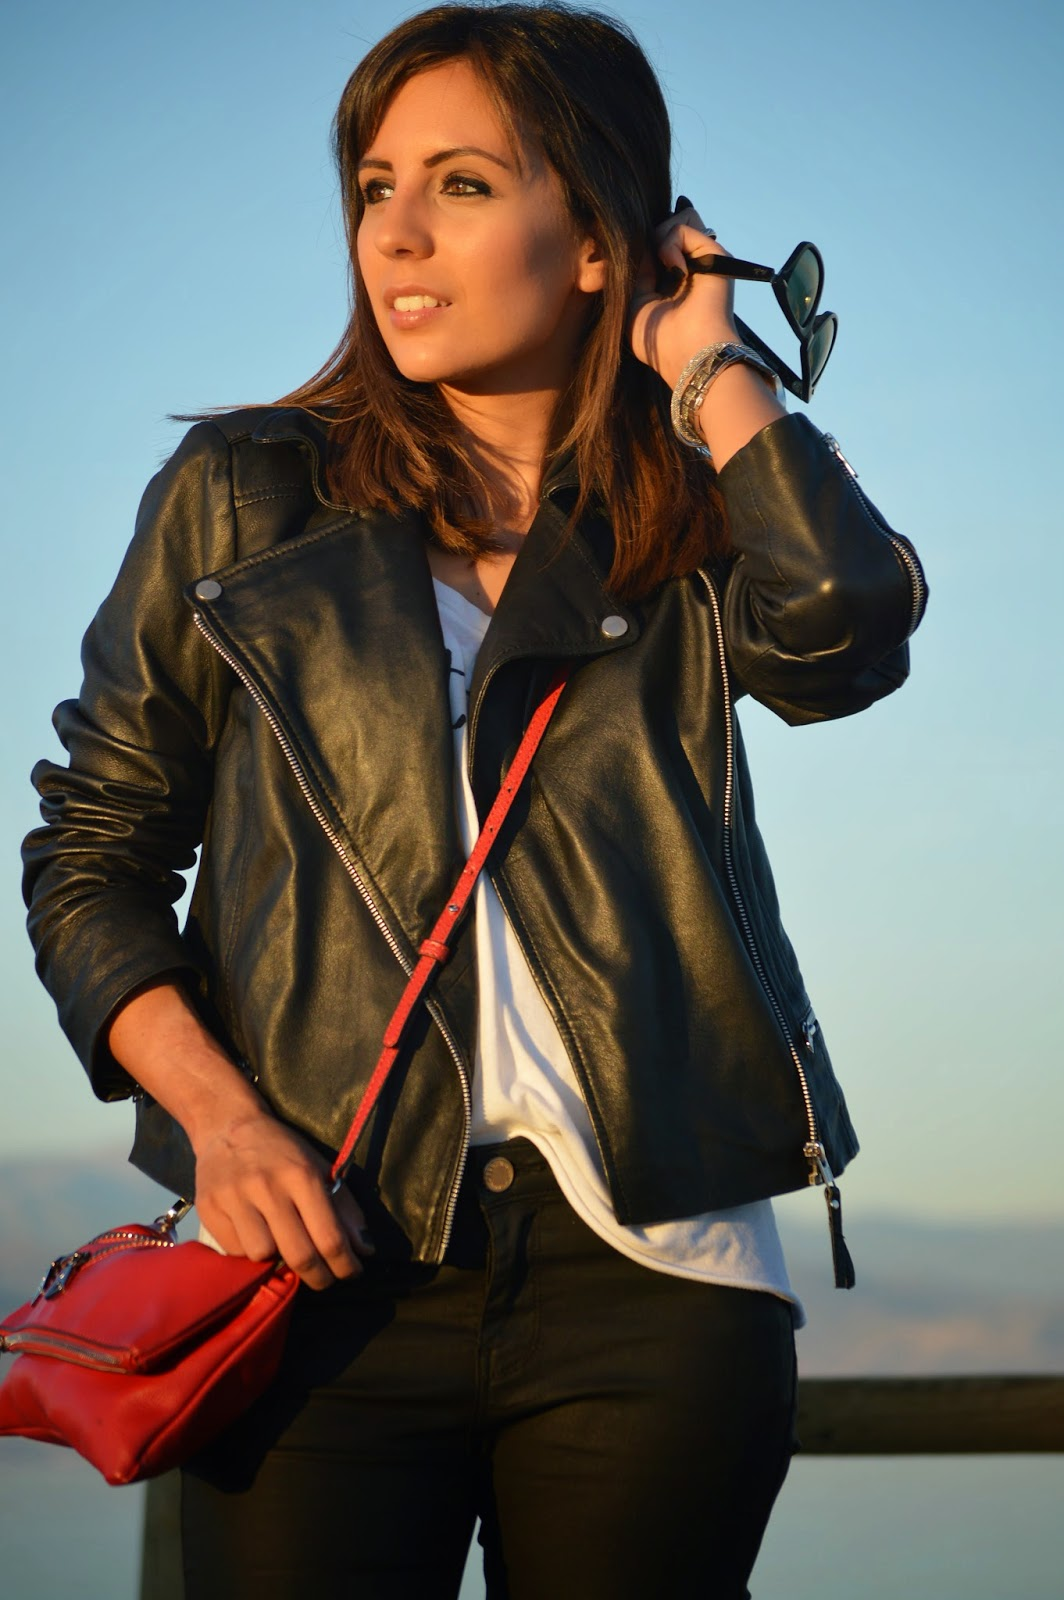 street style style ootd cristina style fashion blogger malagueña blogger malagueña outfit look jacket zara mango espardrilles chic casual gorgeous stunning inspiration moda mood tendencias